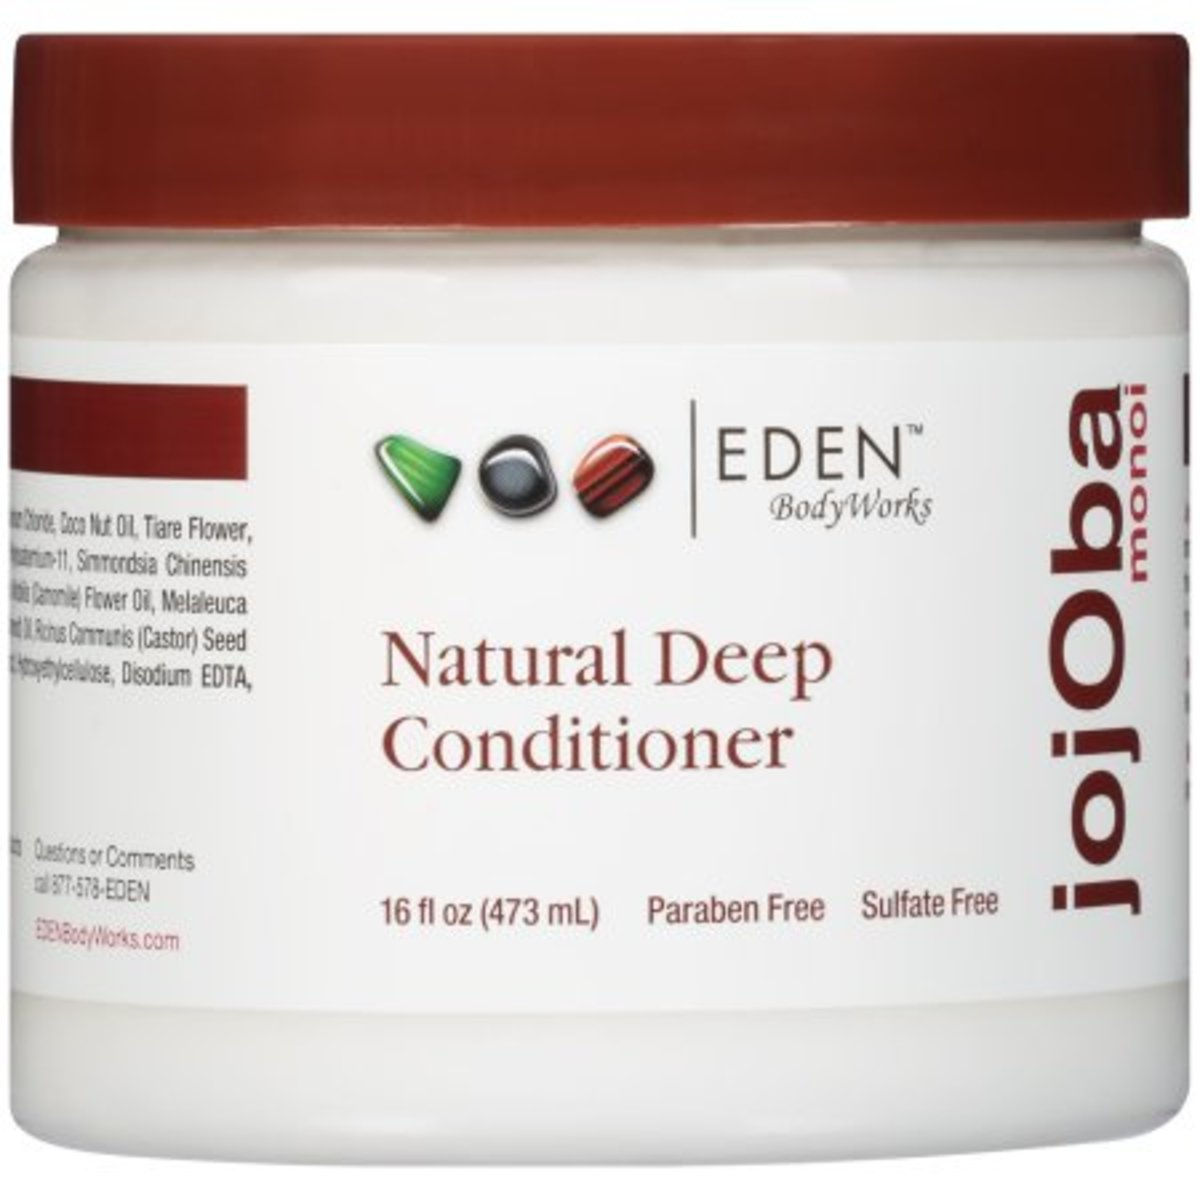 Eden BodyWorks Jojoba Monoi Deep Conditioner - 16oz  8.49$